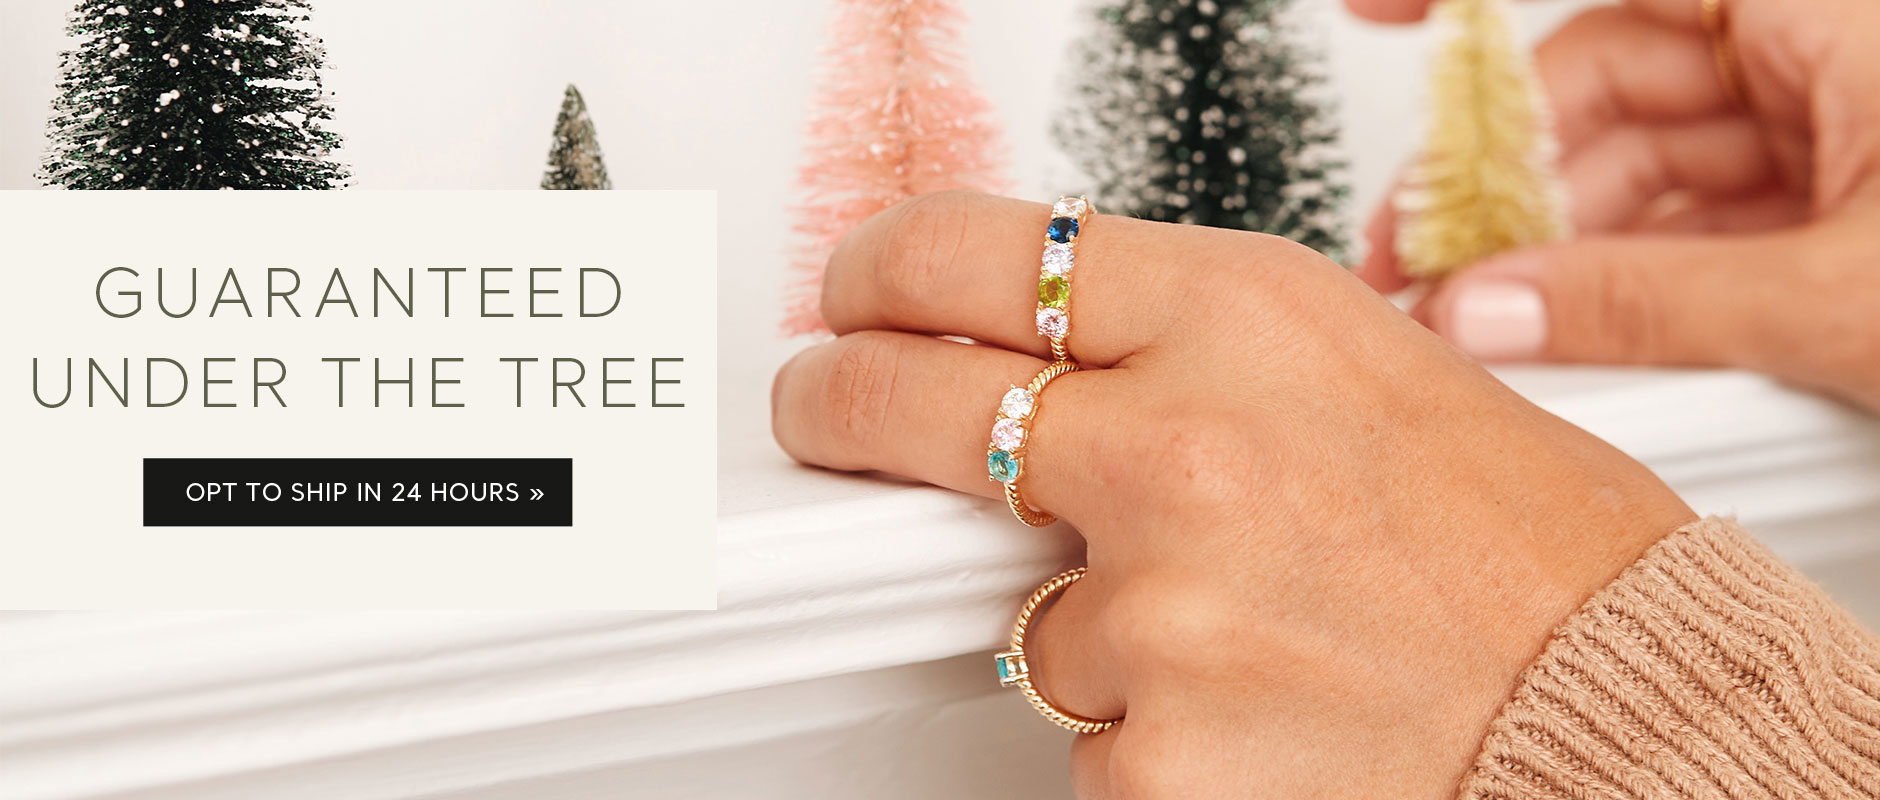 Guaranteed Under the Tree. Opt to ship in 24 hours.